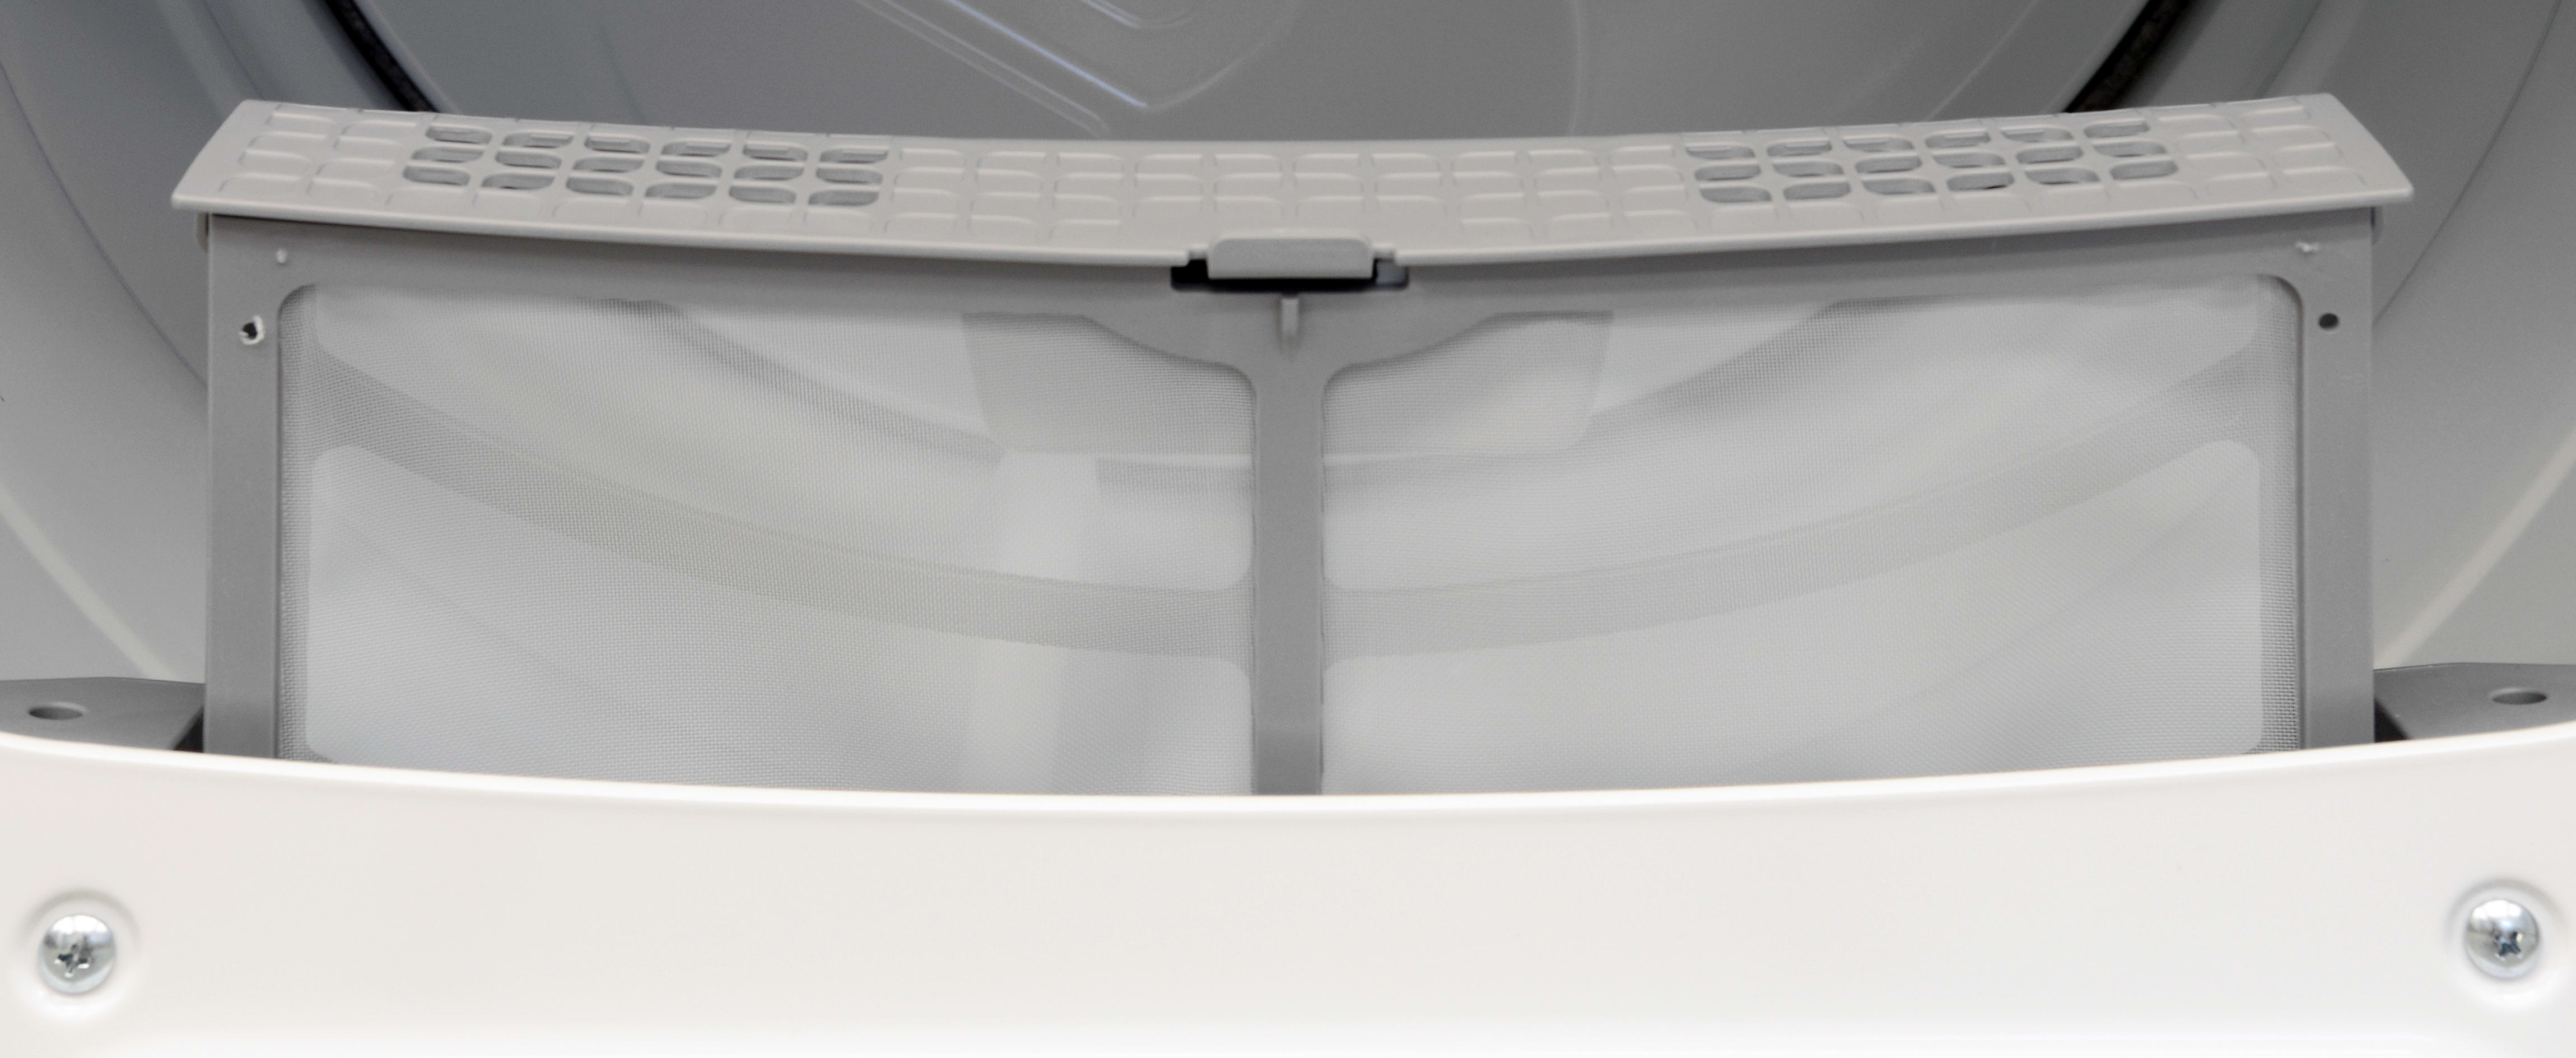 The lint trap used in the Whirlpool Cabrio WED8000DW is a fold-over unit similar to what we'd see on compact machines, not a traditional screen.